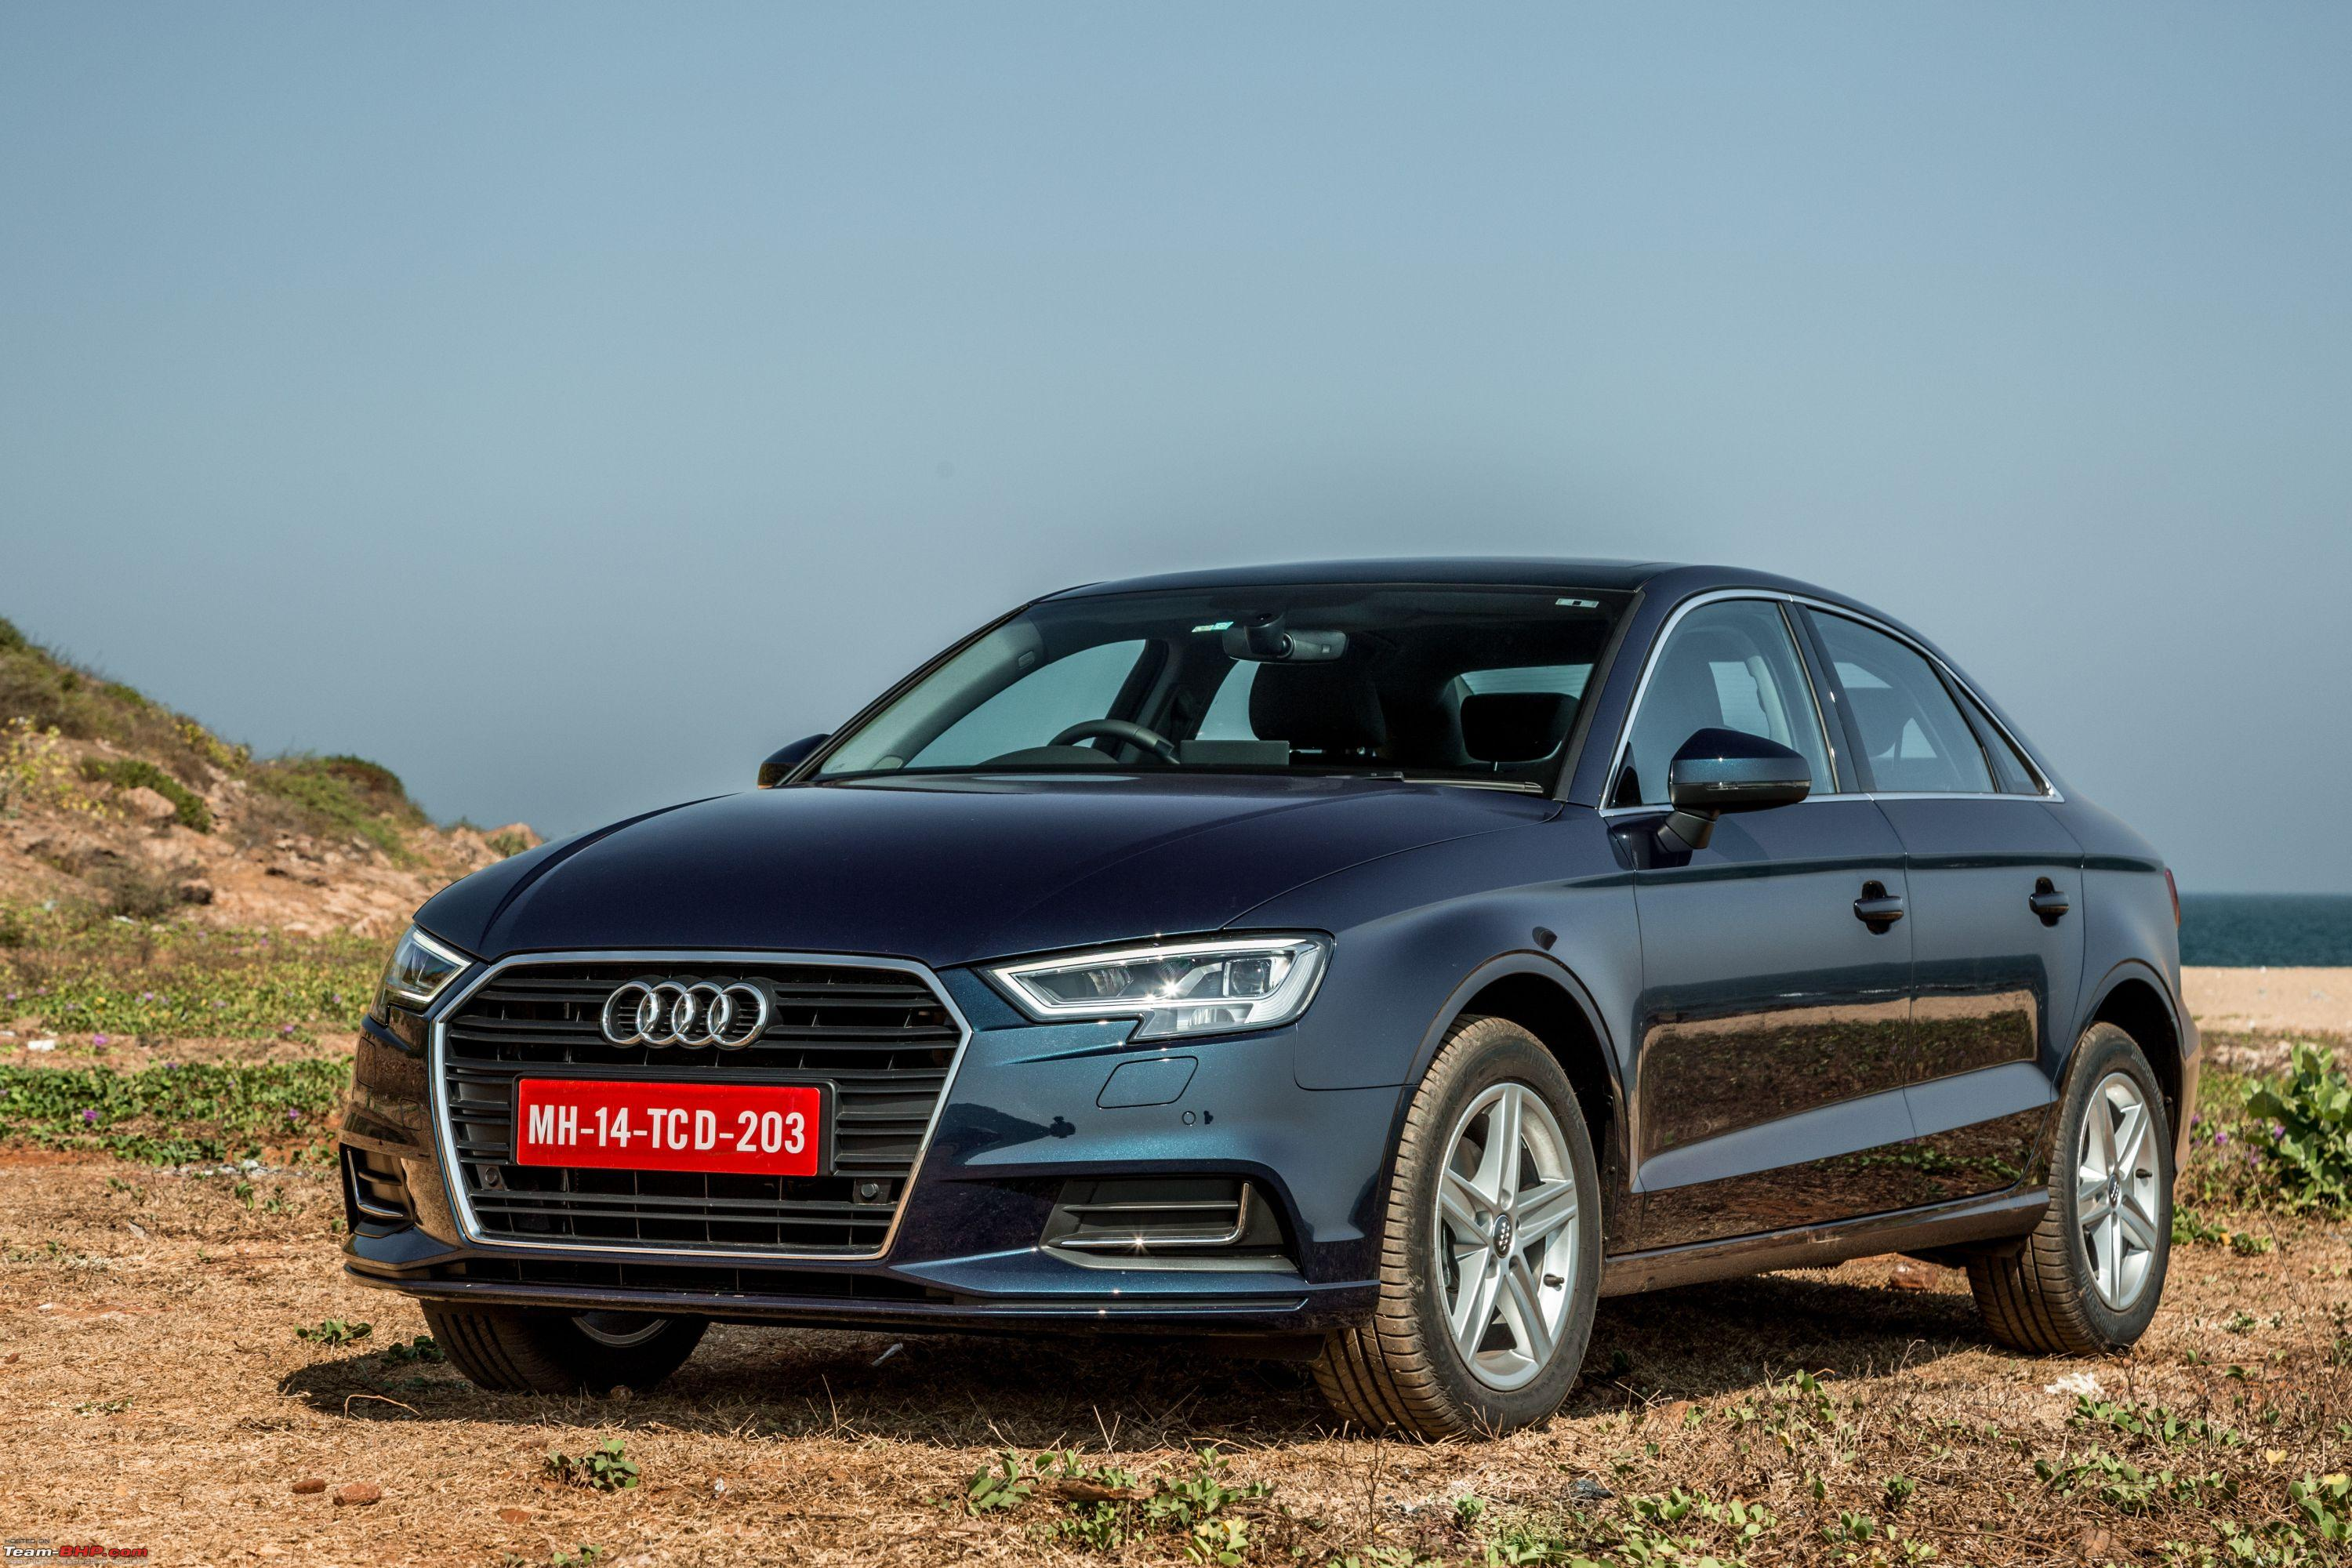 Audi S 5 Year 100 000 Km Service Plan For The A3 A6